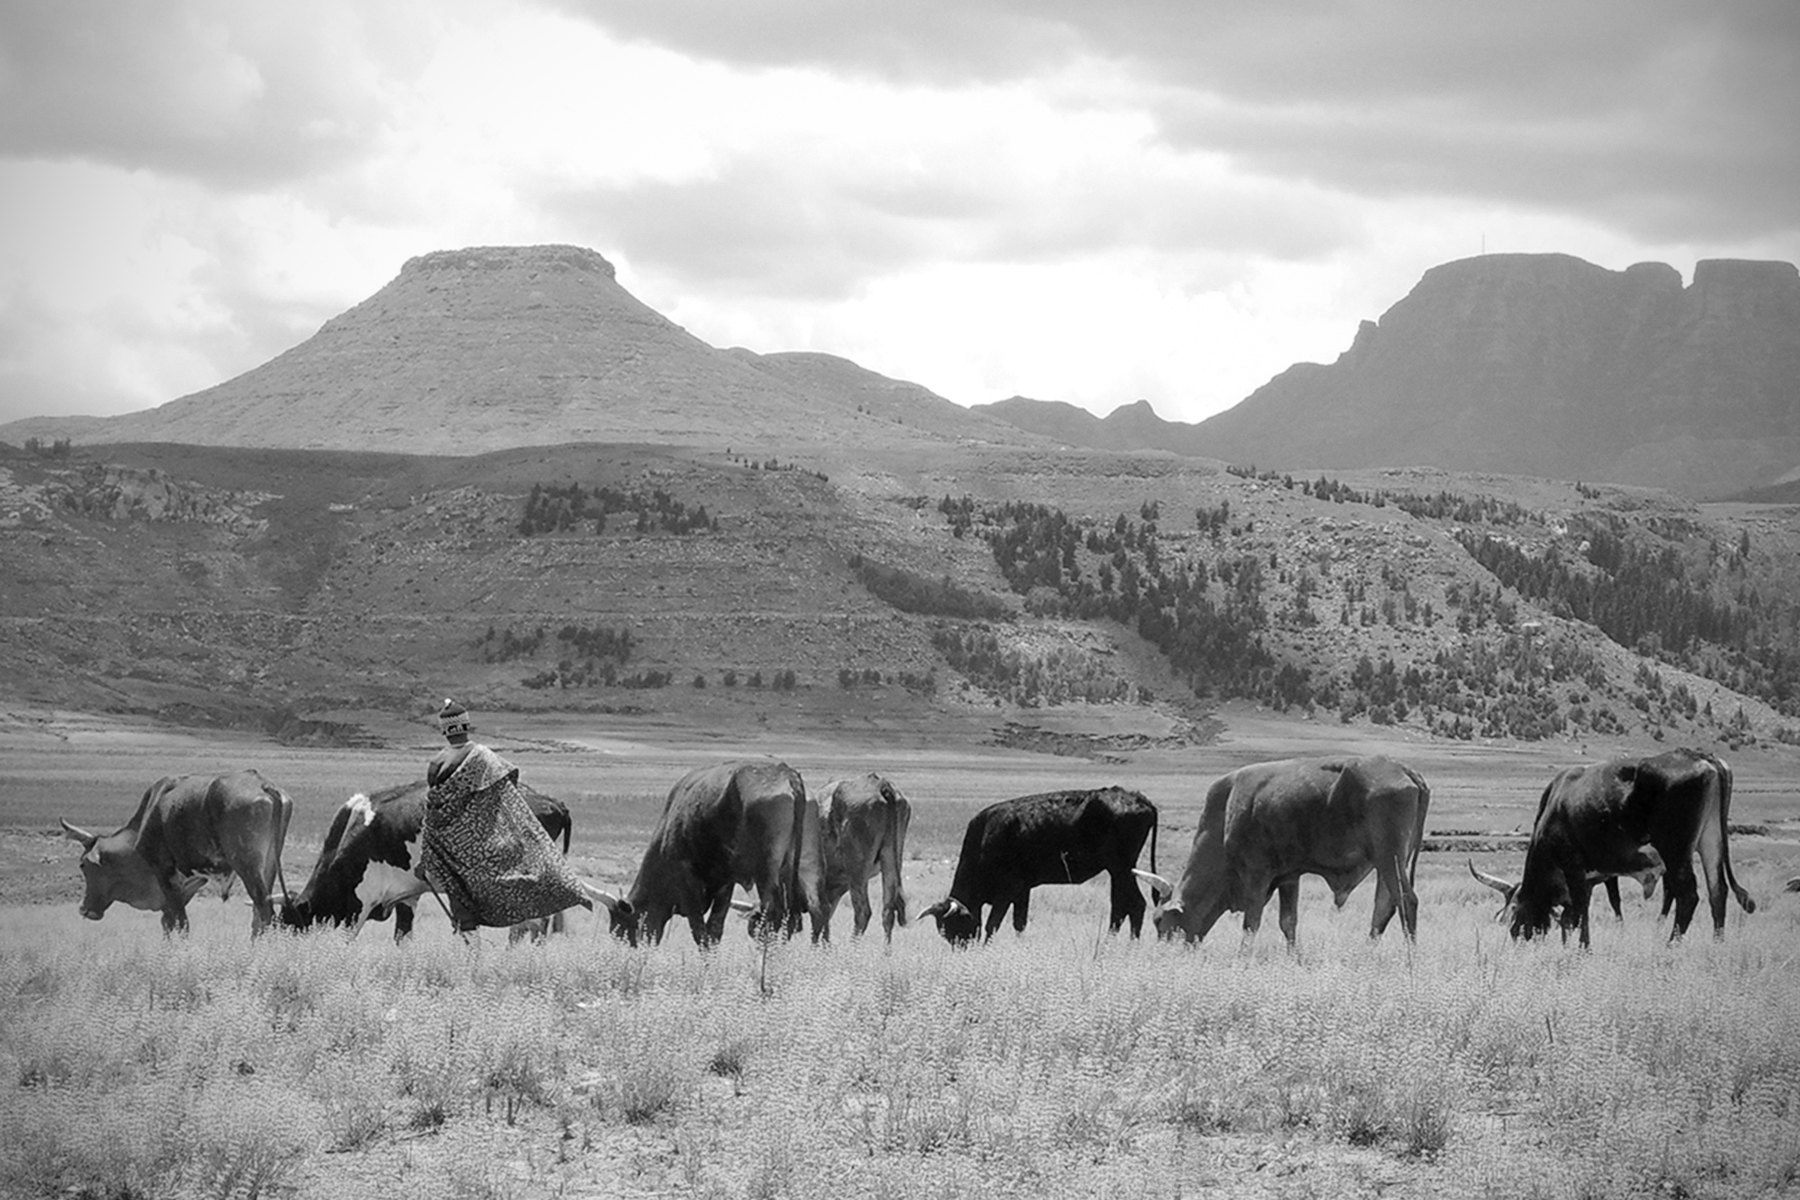 Lesotho is mostly rural and mountainous. Here is a common scene of a herdman with some of his animals near Mohale's Hoek.